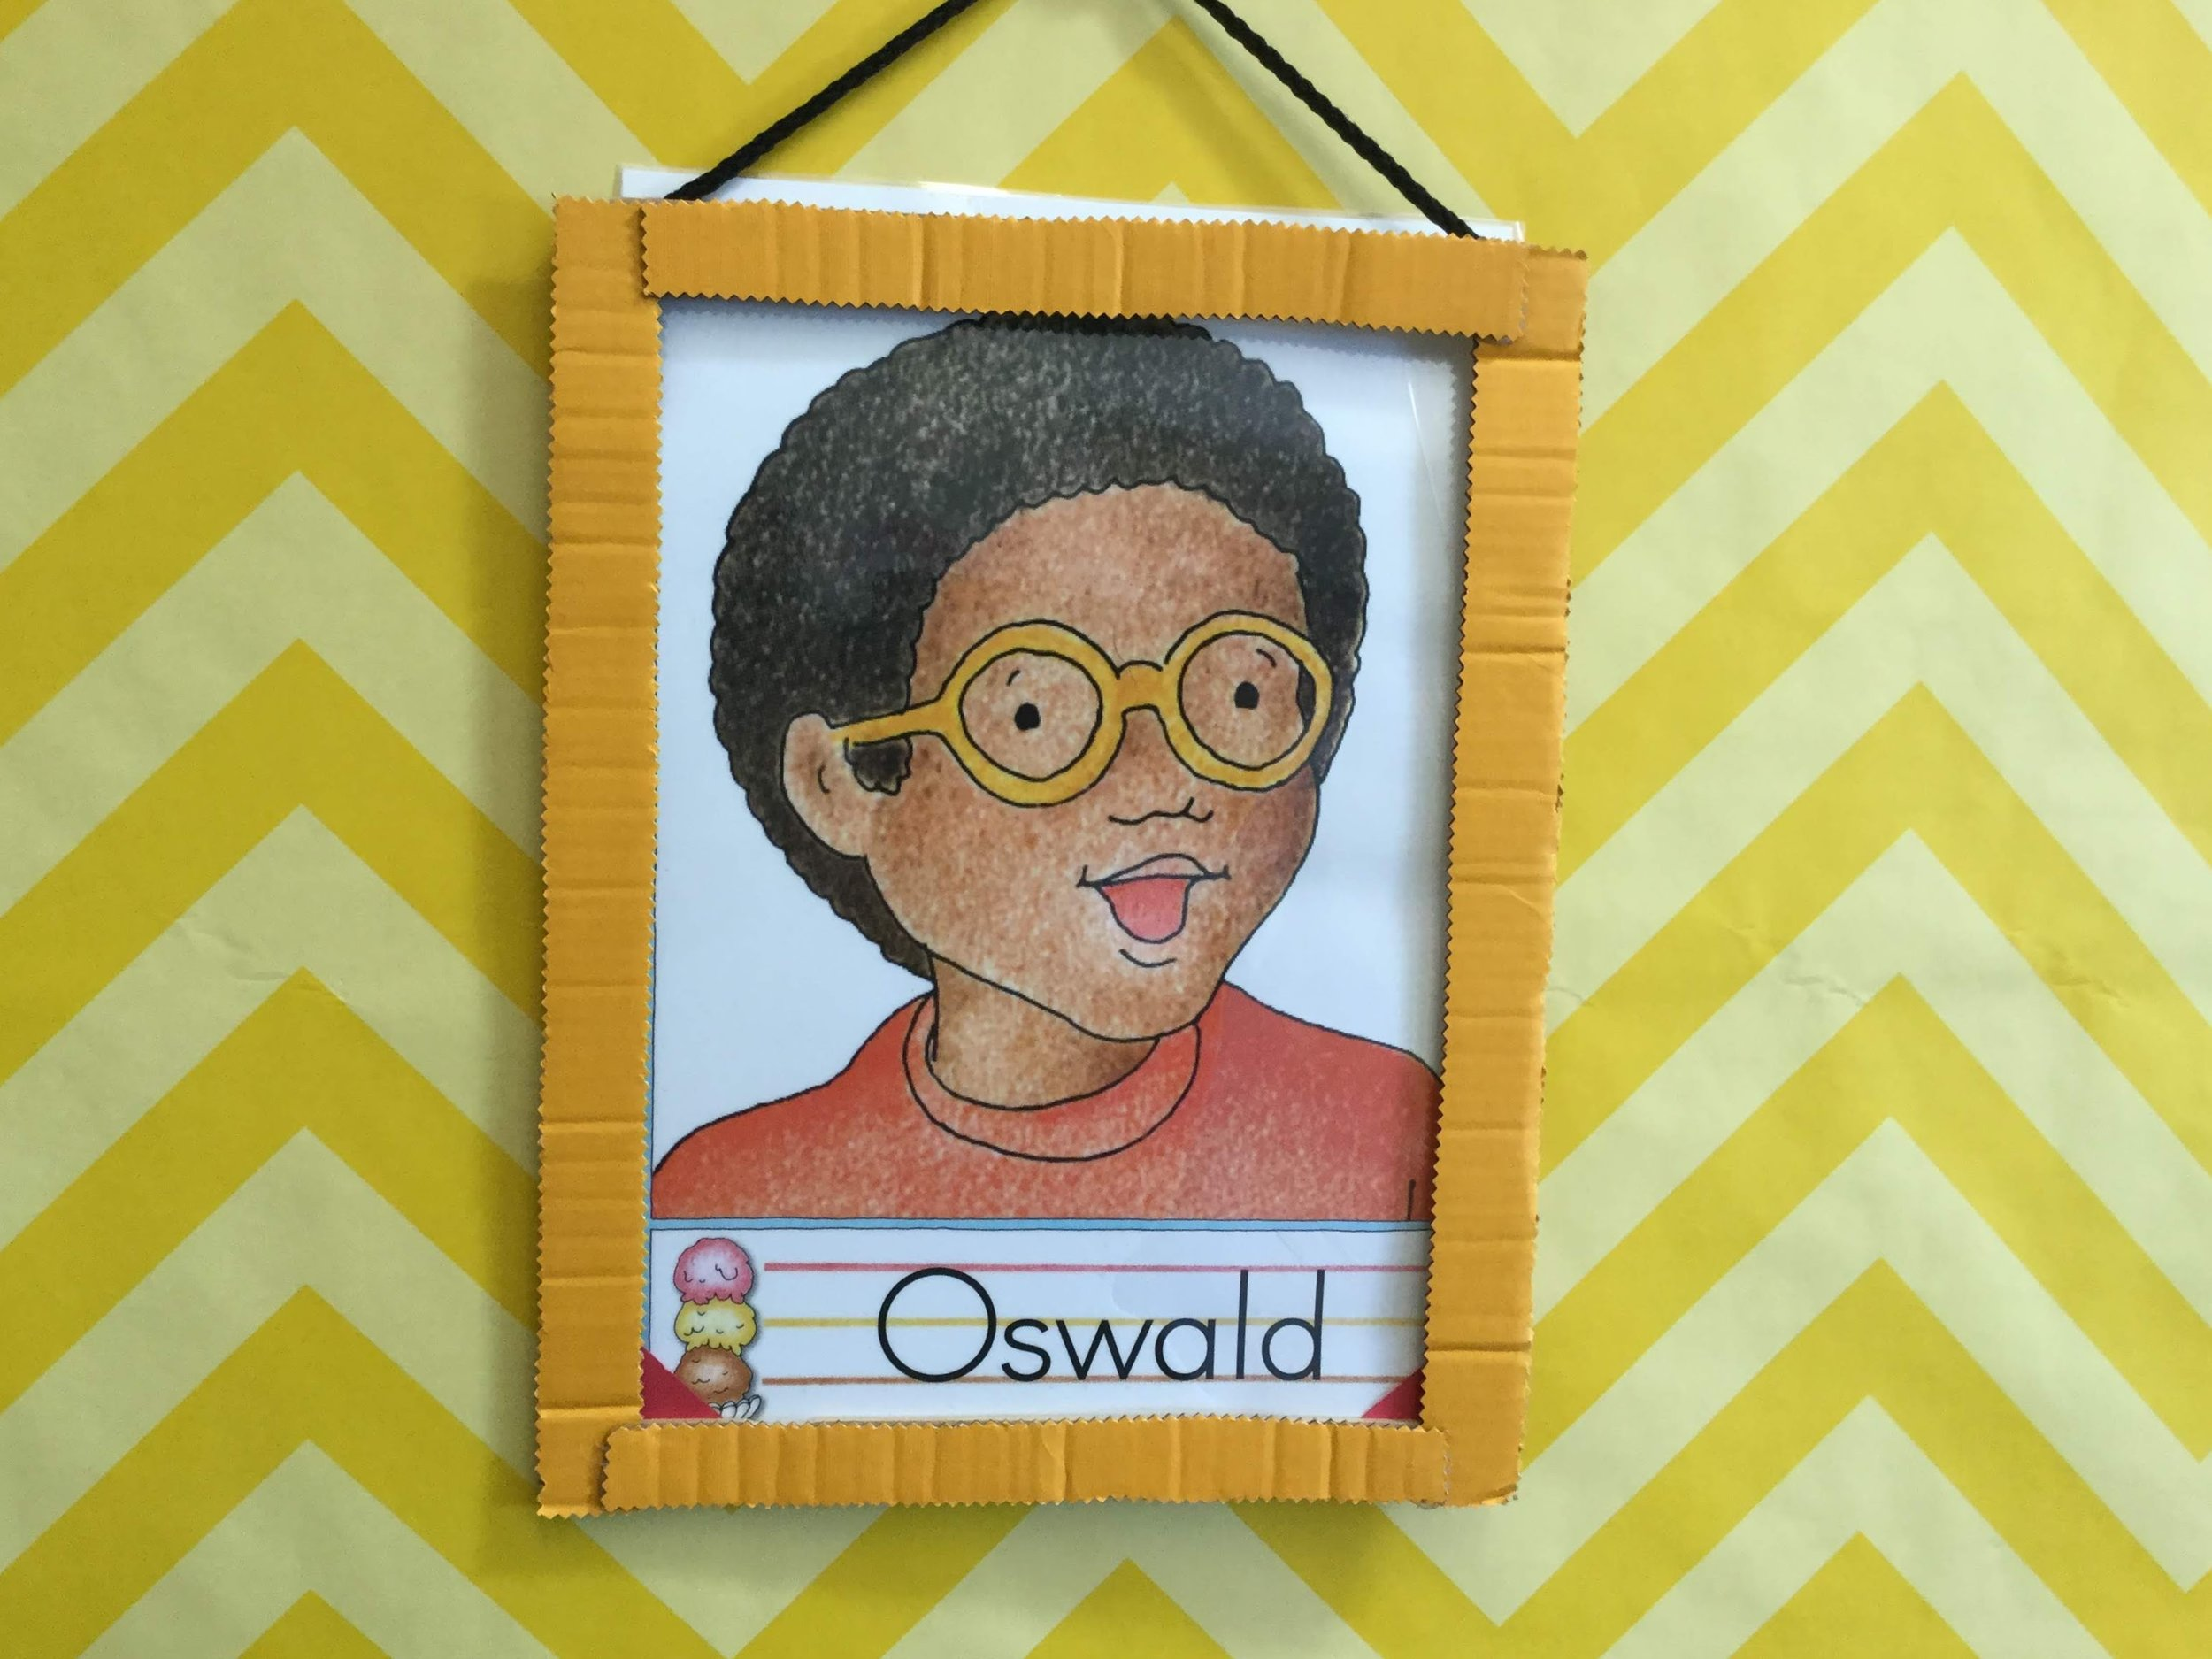 Hey Oswald - Oswald is helping us with the letter O. He loves odd animals like otters and ocelots. He teaches us to make an O by starting with a C and closing it up. Thanks Oswald.